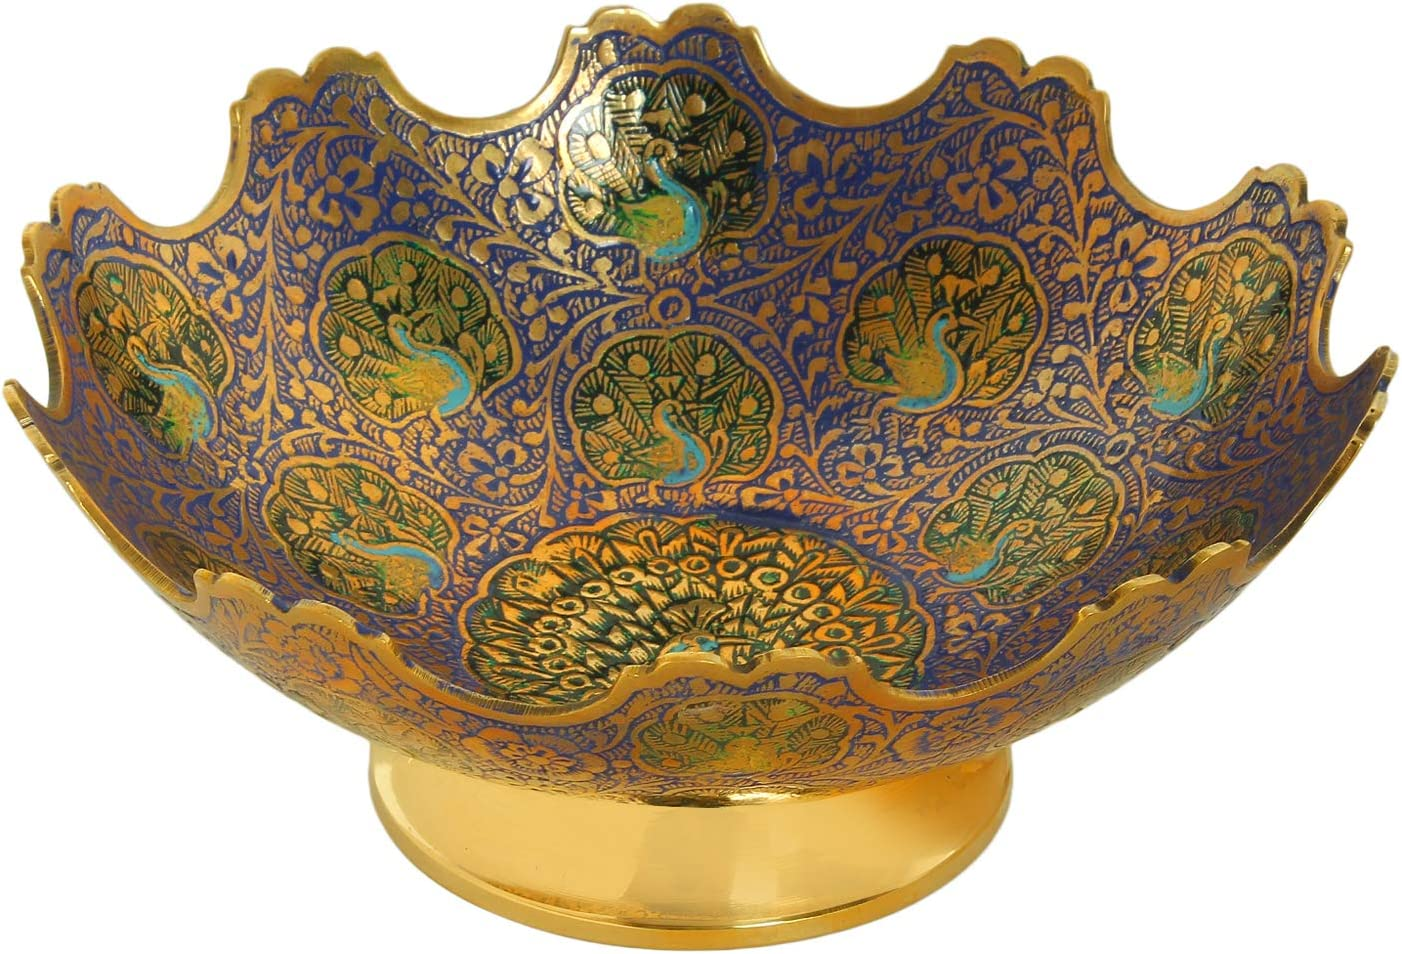 "Zap Impex Brass Decorative Dry Fruit Bowl carving Work - Size- 7"" Beautiful Peacock design Kitchenware Gift"